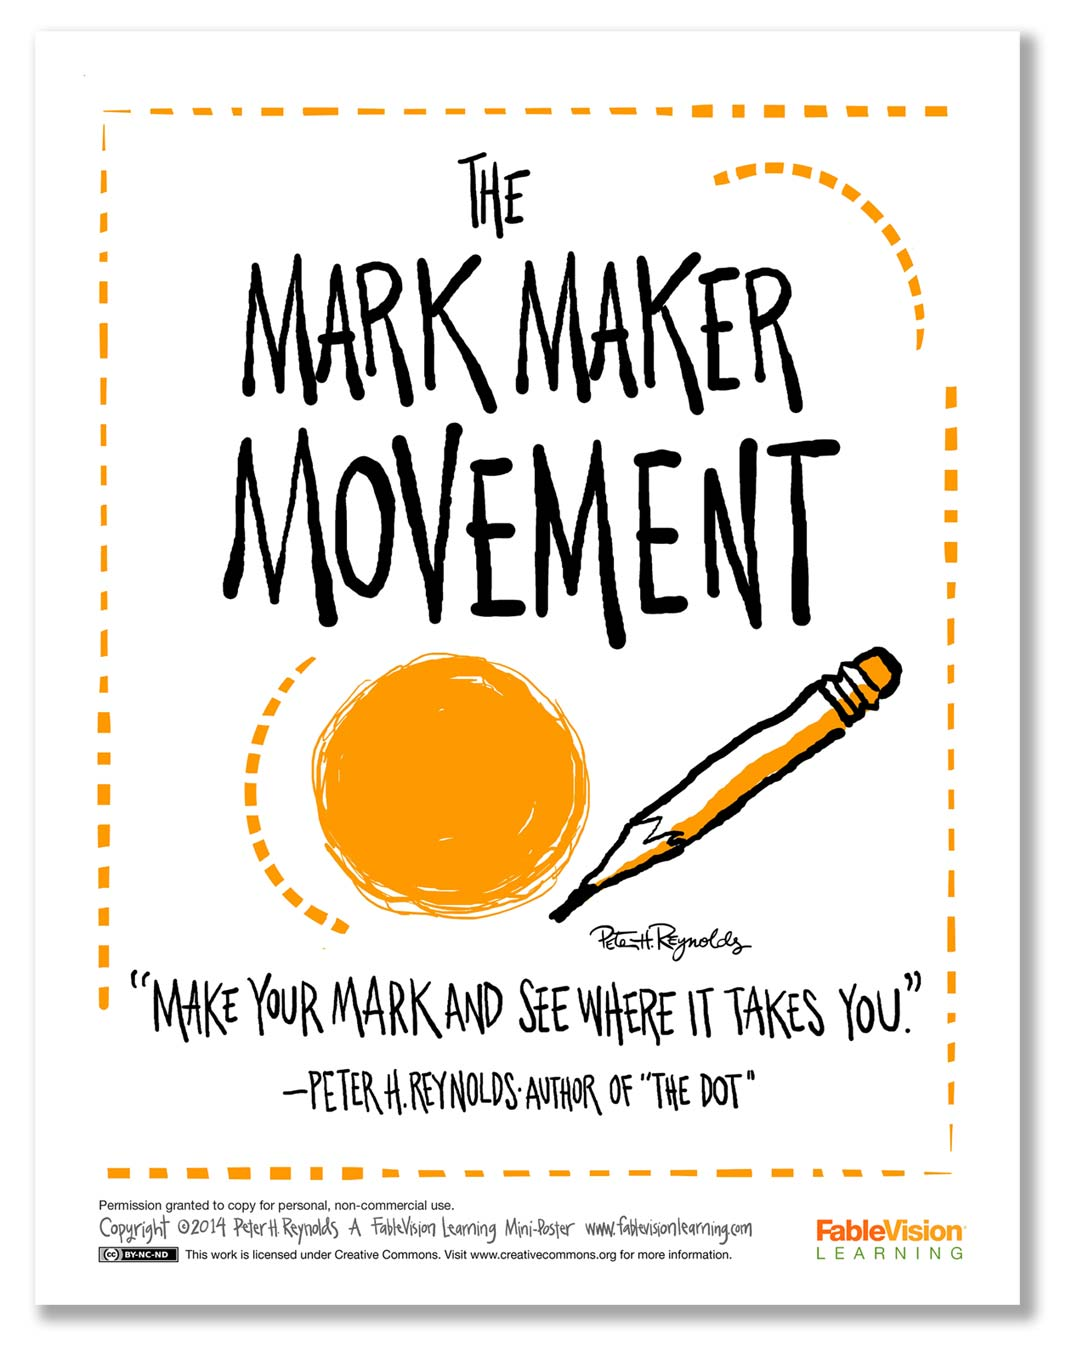 The Mark Maker Movement Fablevision Learning